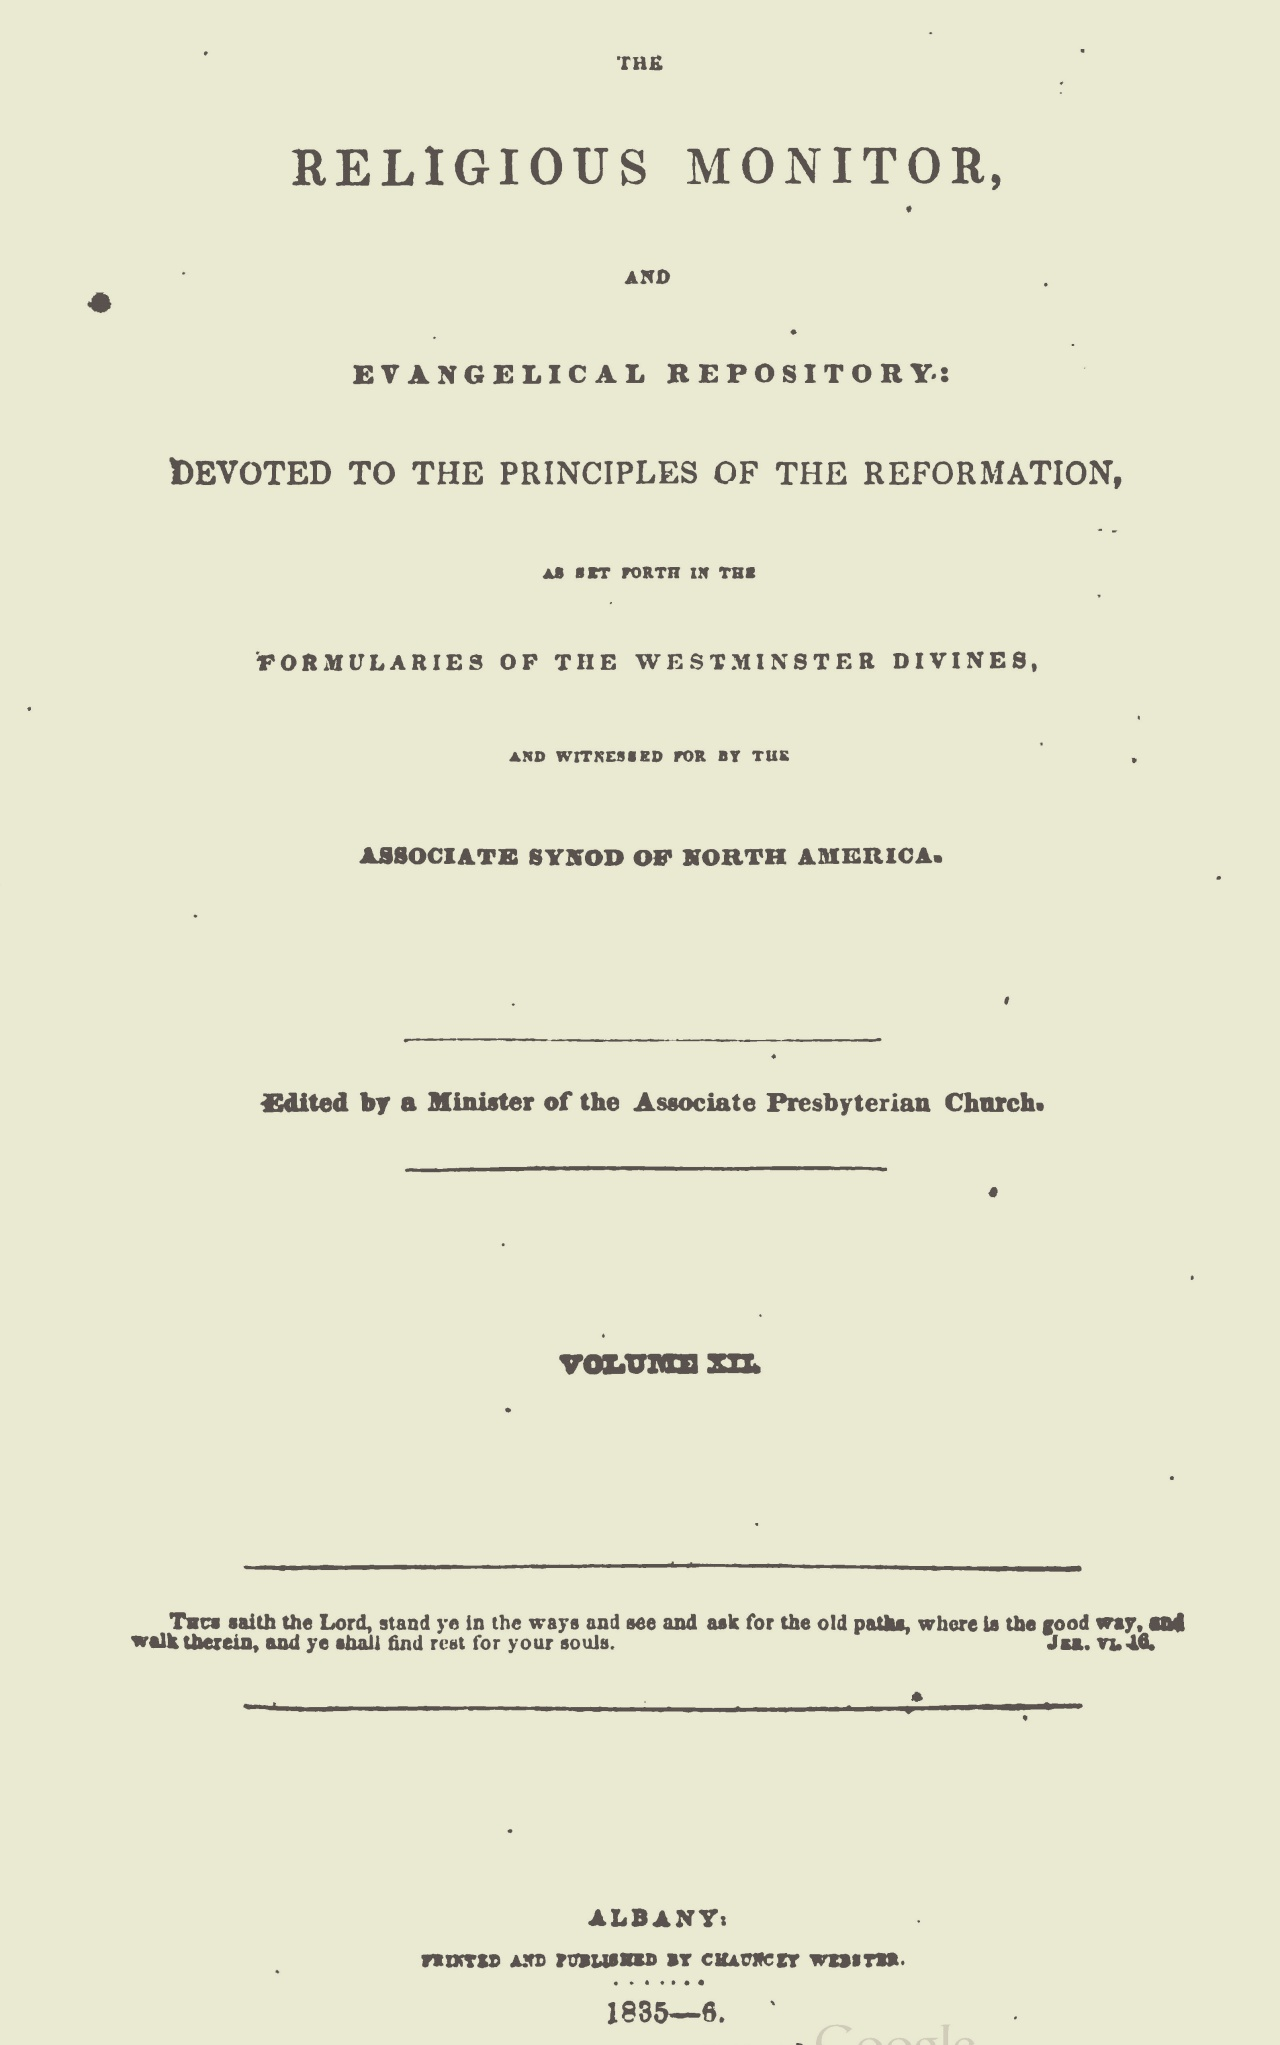 Webster, Chauncey, The Religious Monitor, and Evangelical Repository, Vol. 12 Title Page.jpg